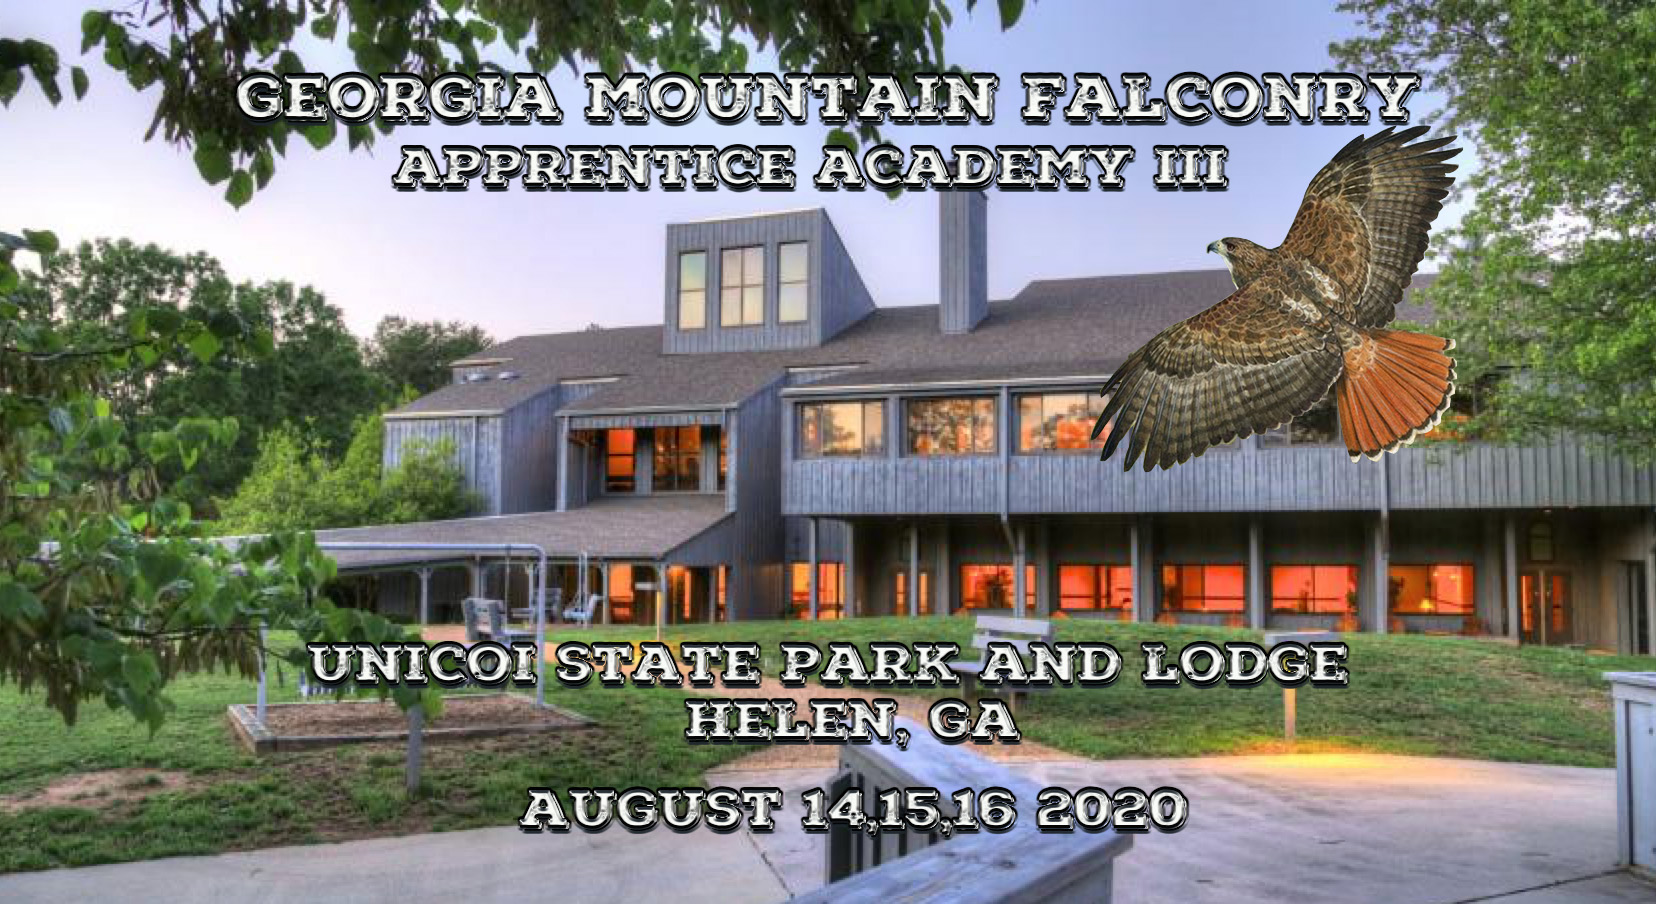 Georgia Mountain Falconry